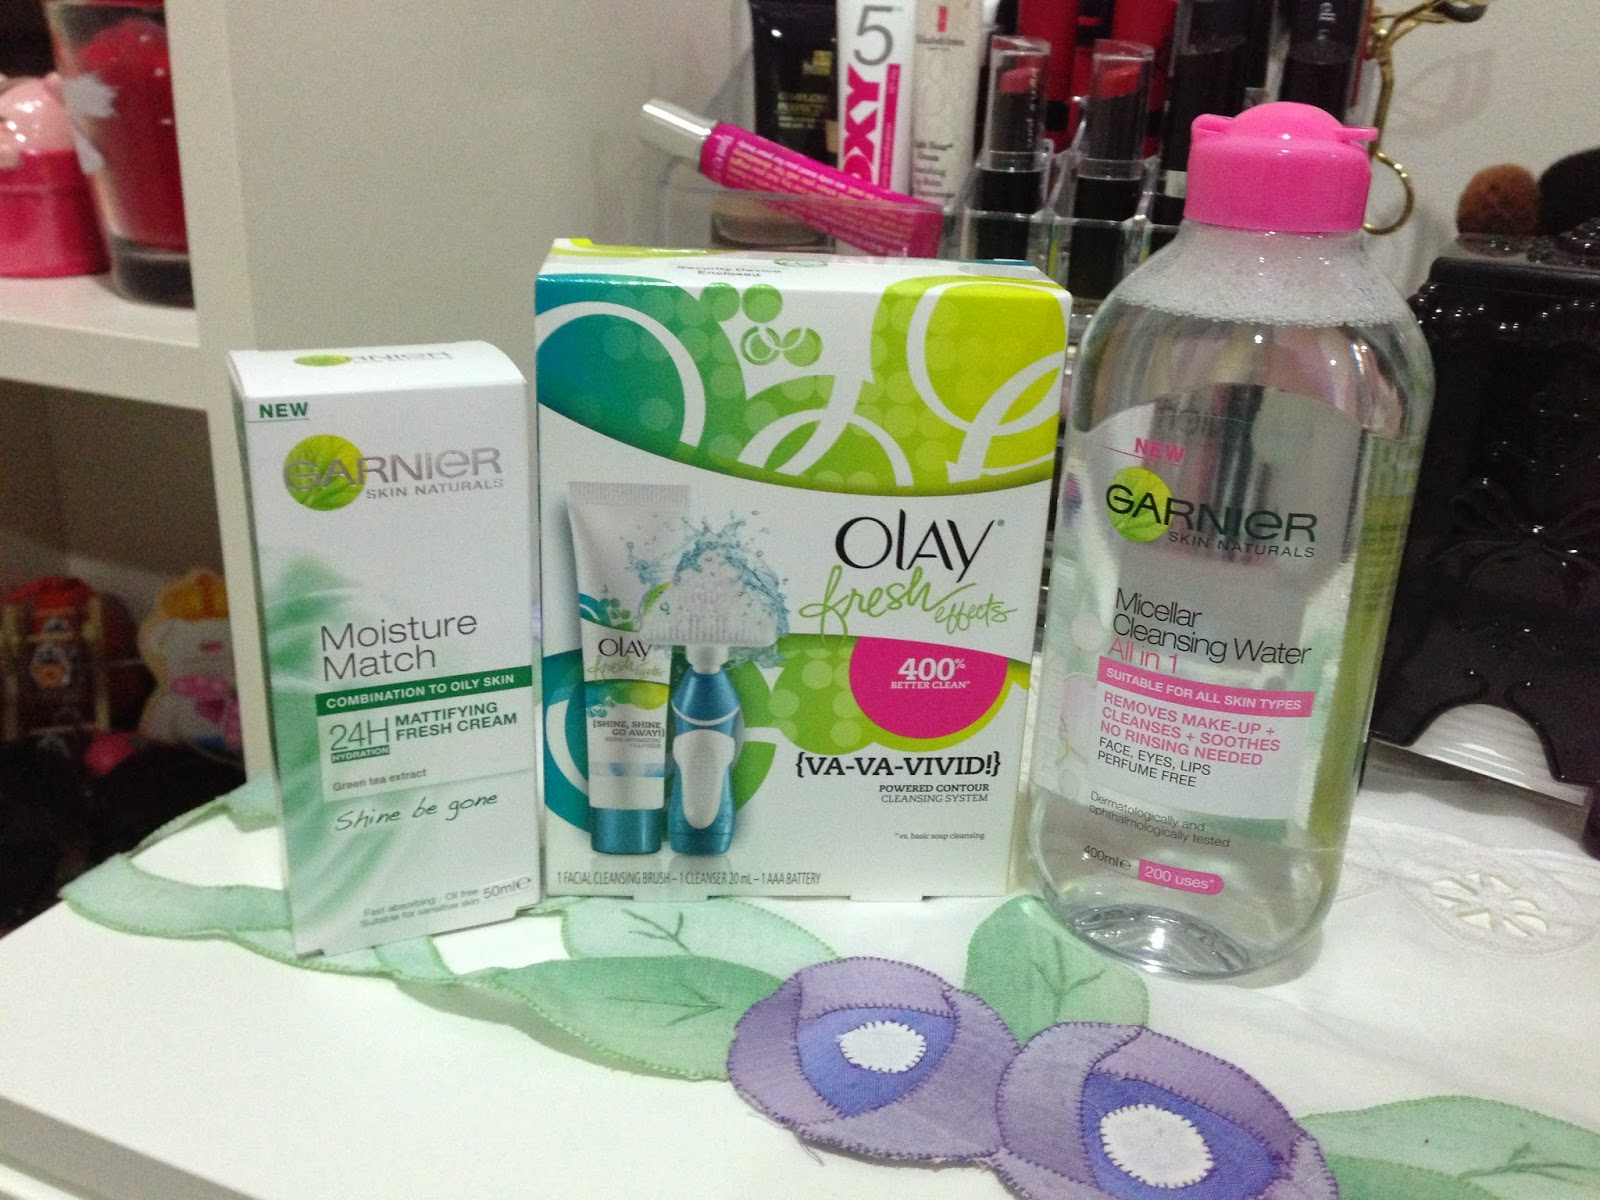 Garnier Micellar Cleansing Water, Olay Fresh Effects Powered Contour System & Garnier Moisture Match Combination/Oily Mattifying Fresh Cream